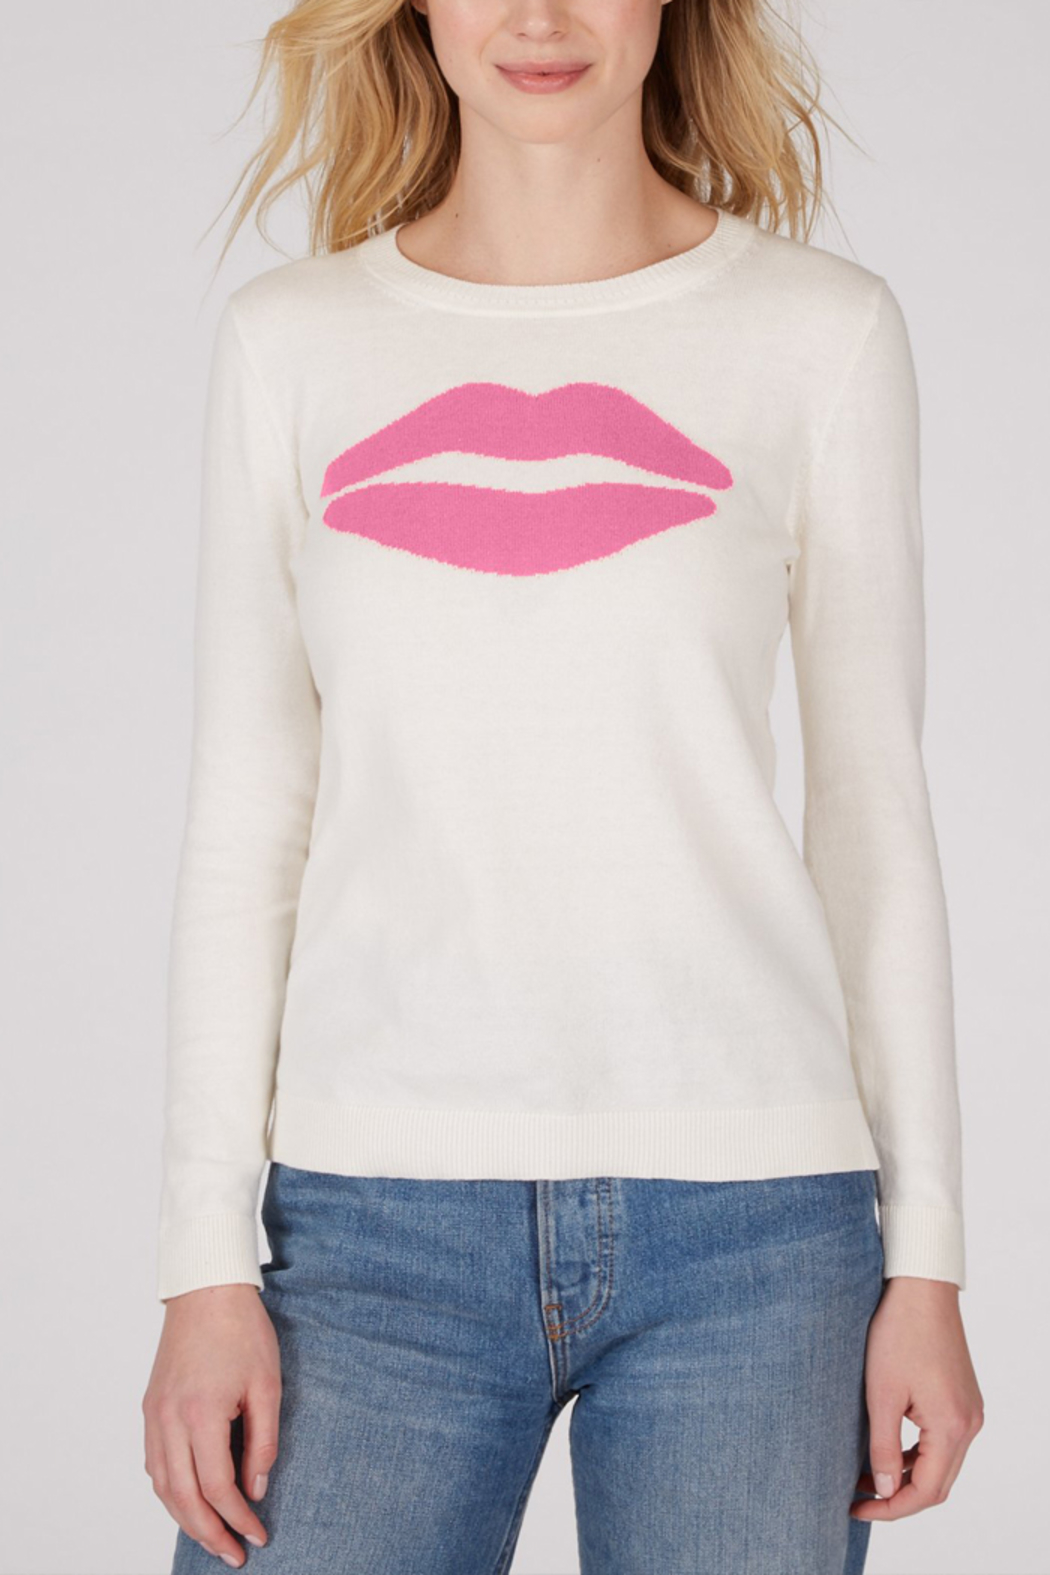 525 America 525 AMERICA COTTON JERSEY LIPS SWEATER - Front Cropped Image